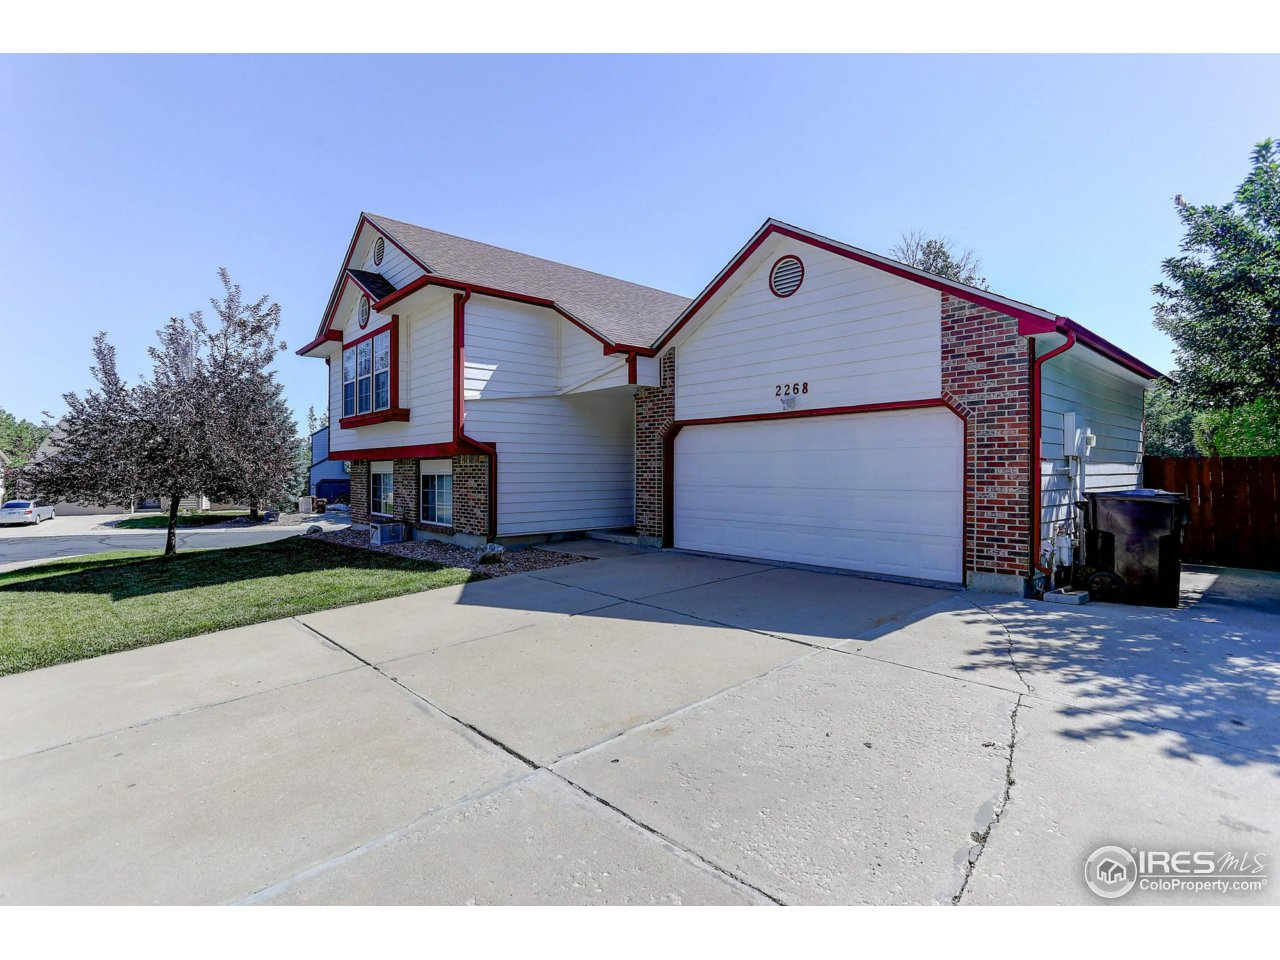 2268 Dogwood Cir, Louisville CO 80027